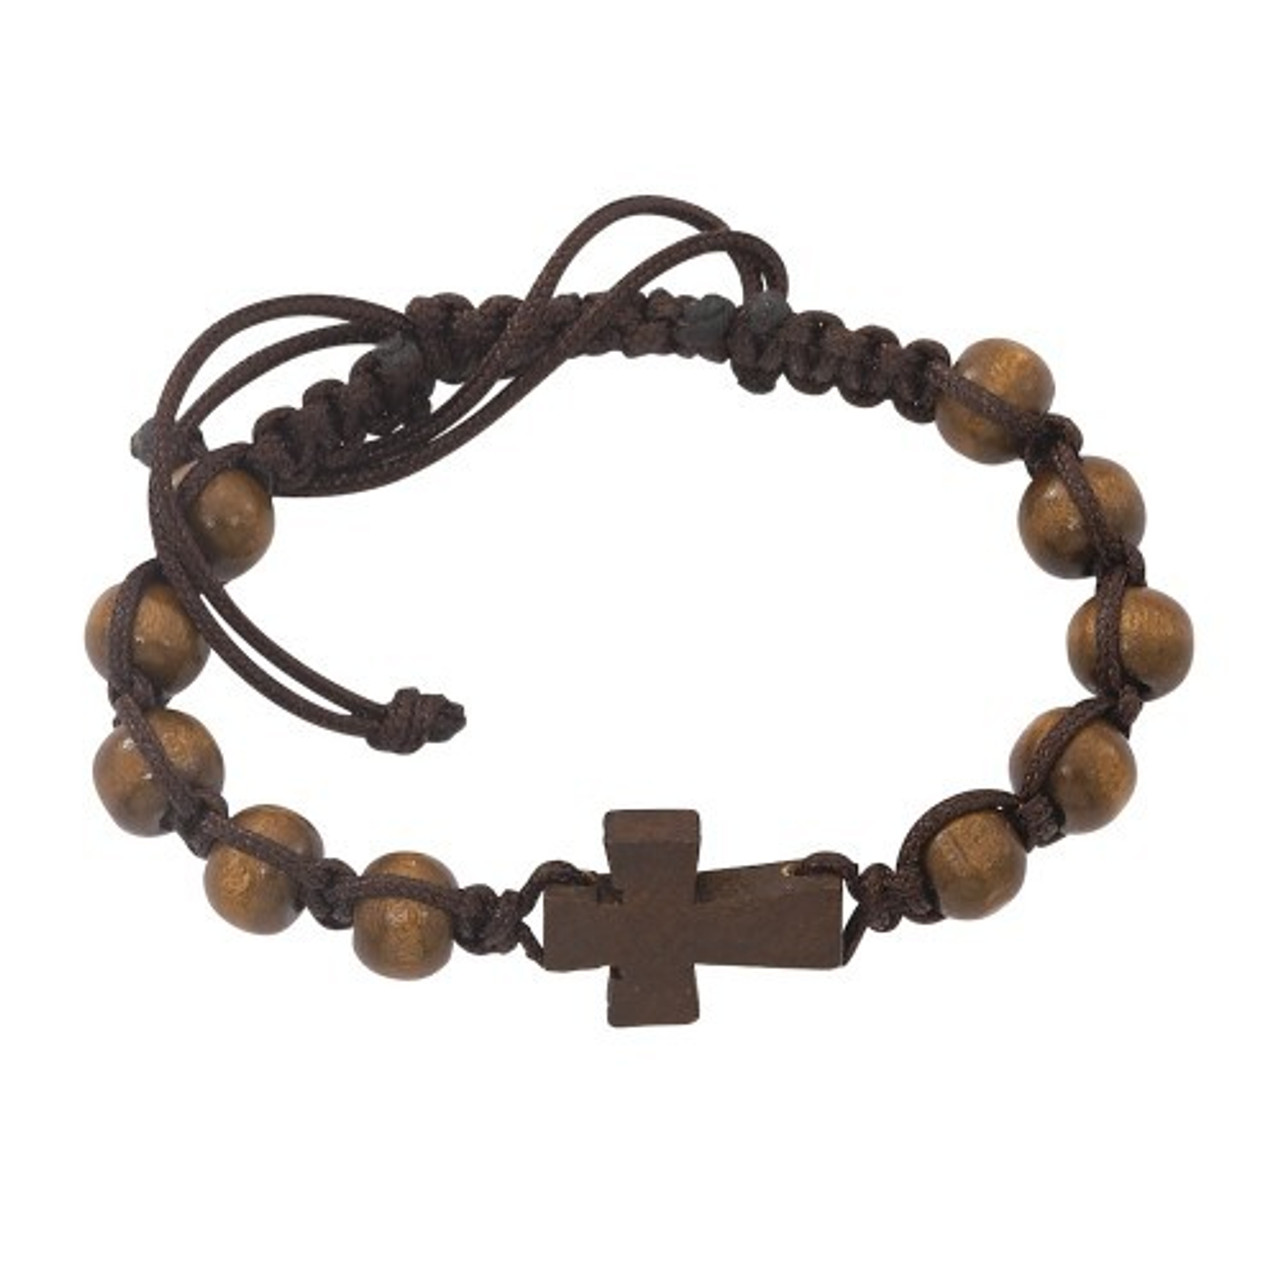 Brown Wood Cross Bracelet Woven Band Wood Beads